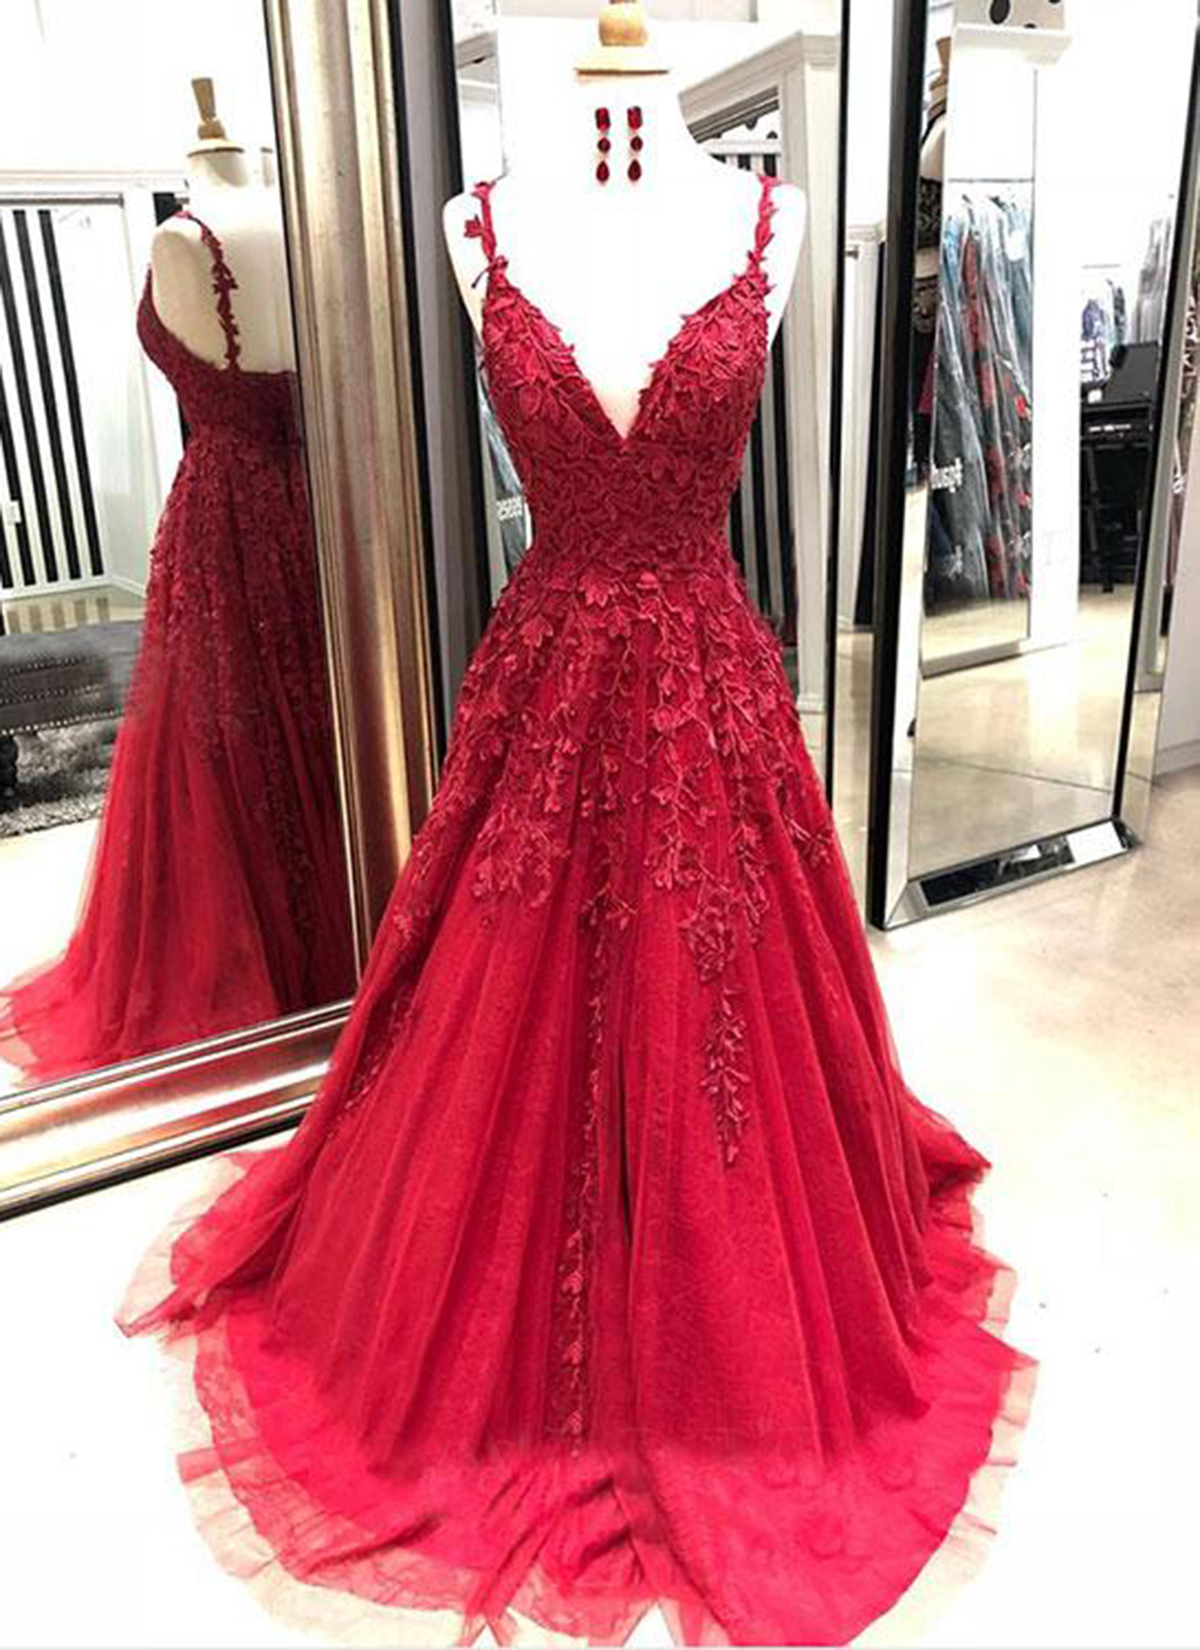 Burgundy Tulle V Neck Long Spring Prom Dress With Lace Appliqué From Sweetheart Dress